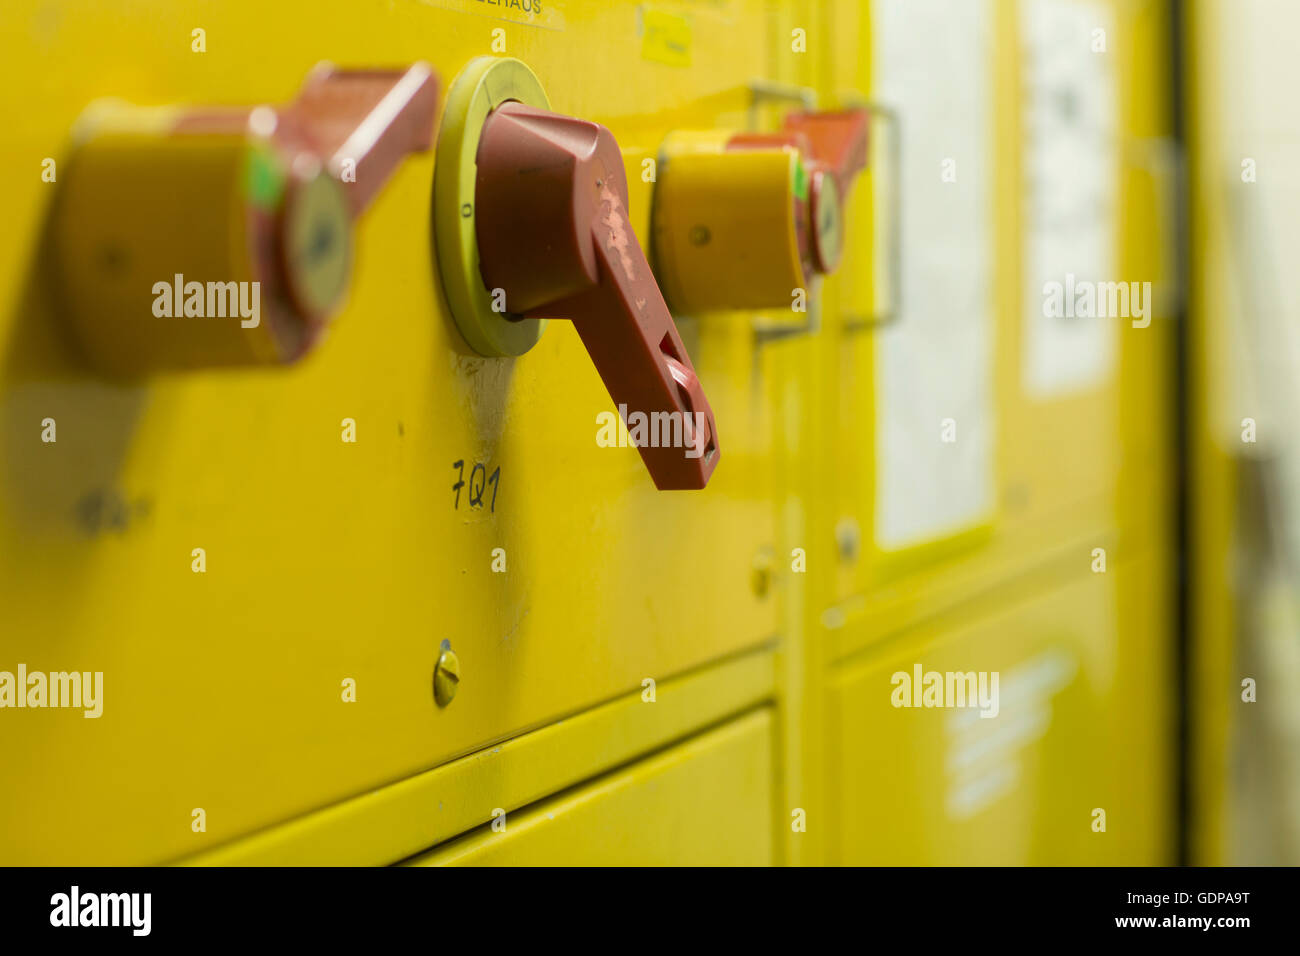 Close up of levers on yellow control panel - Stock Image